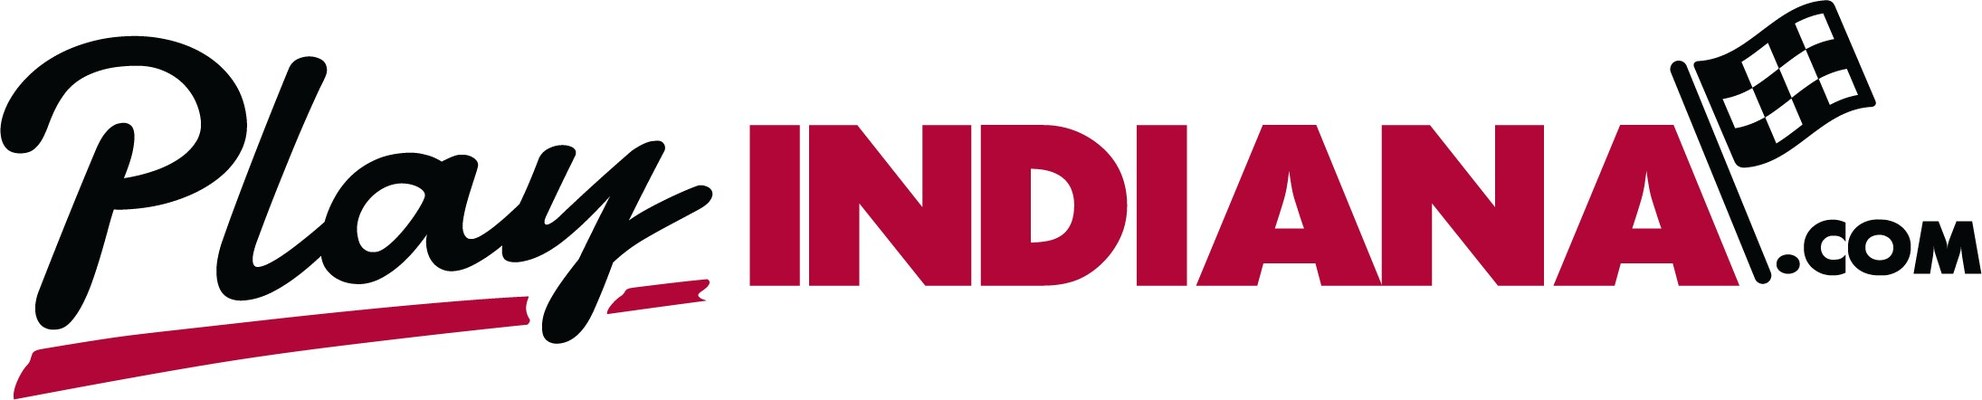 Indiana Sportsbooks Ride Football to Record $355 Million in Wagers, According to PlayIndiana